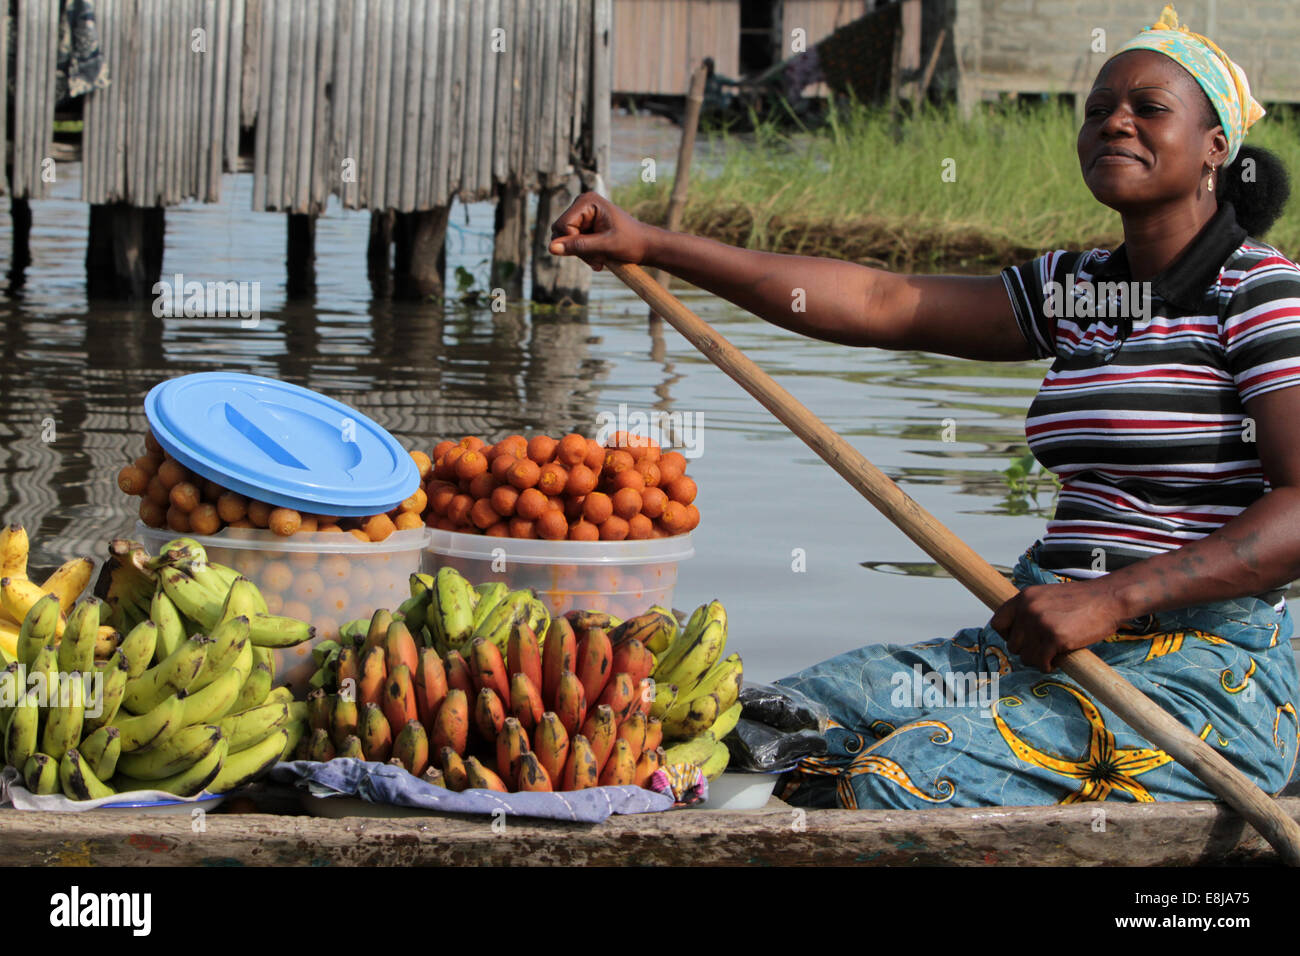 African woman market paddling a canoe carrying fruit. - Stock Image